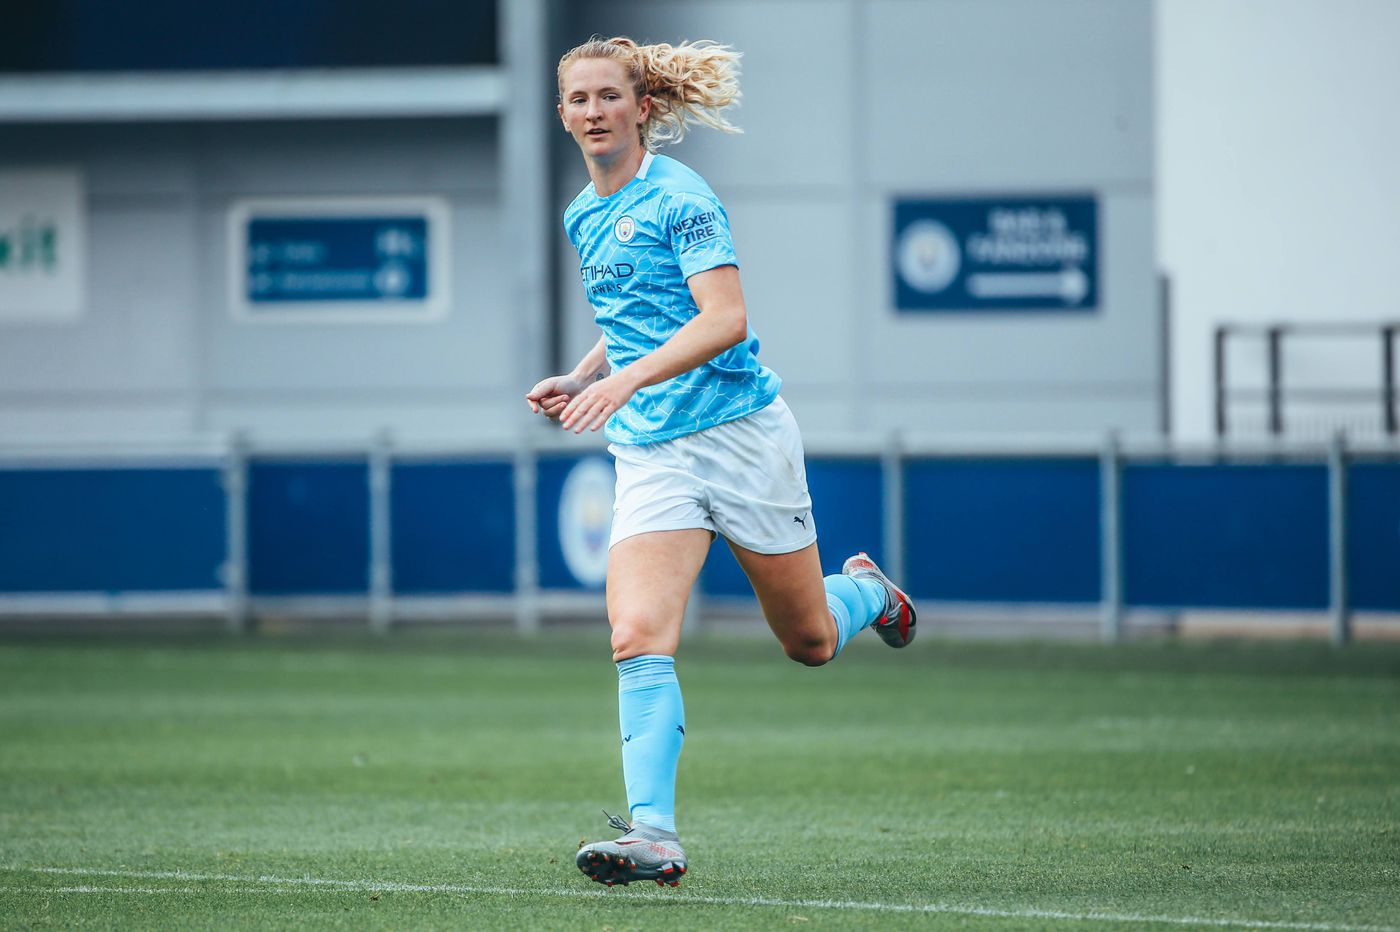 Soccer on TV: Women's Champions League final; Sam Mewis' Manchester City debut; Liverpool-Arsenal